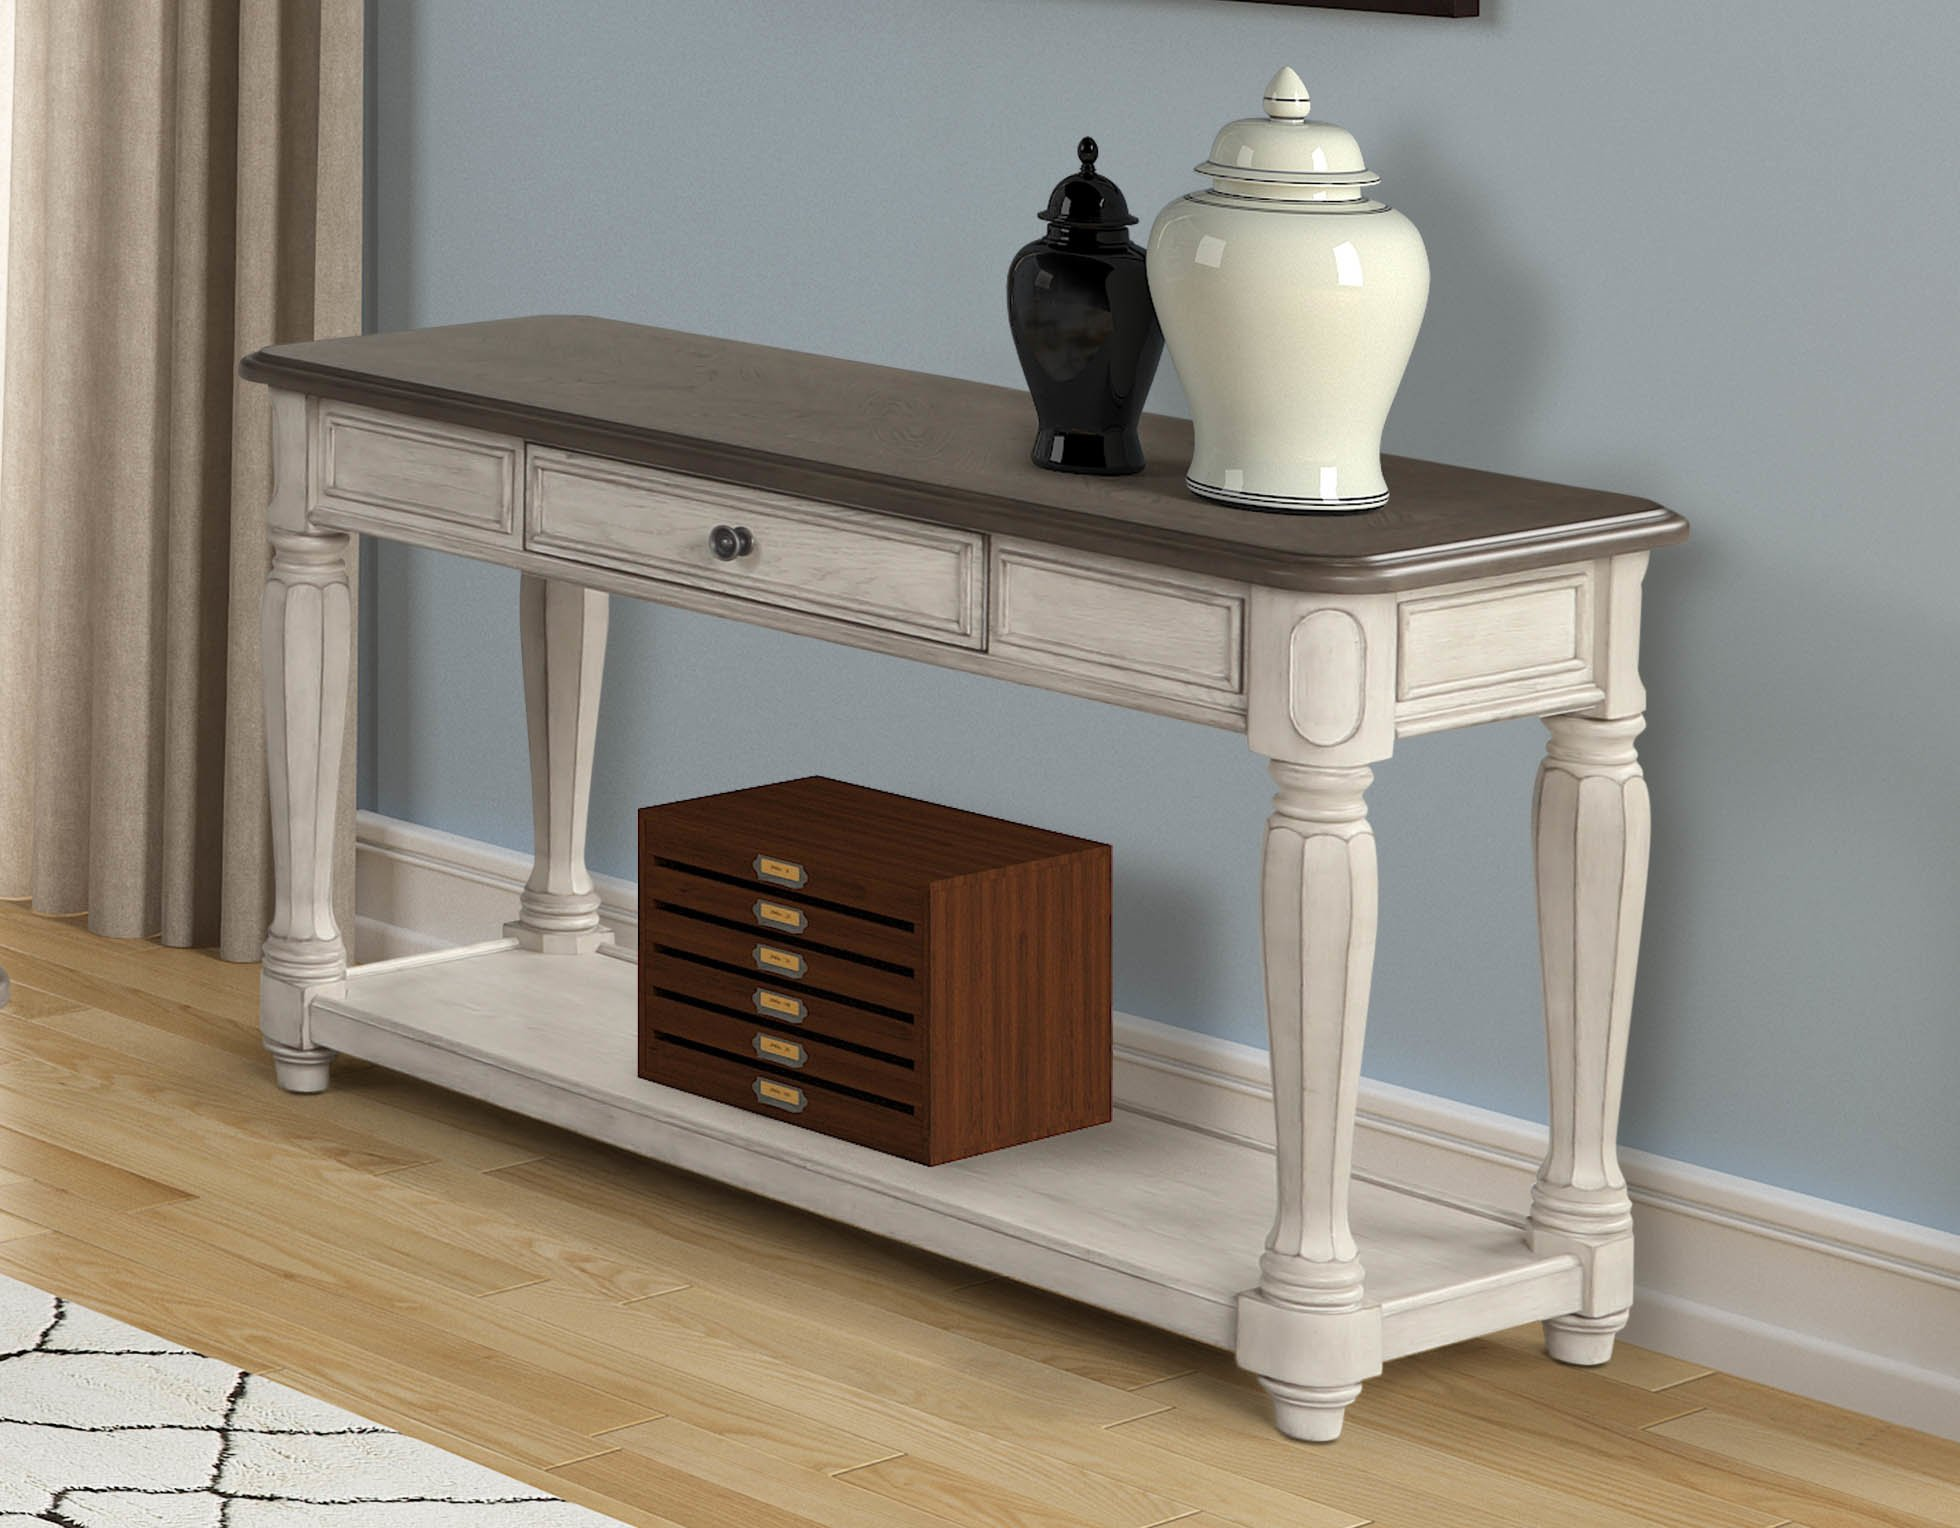 Linden Sofa Table 8918-004 Ivory and Walnut